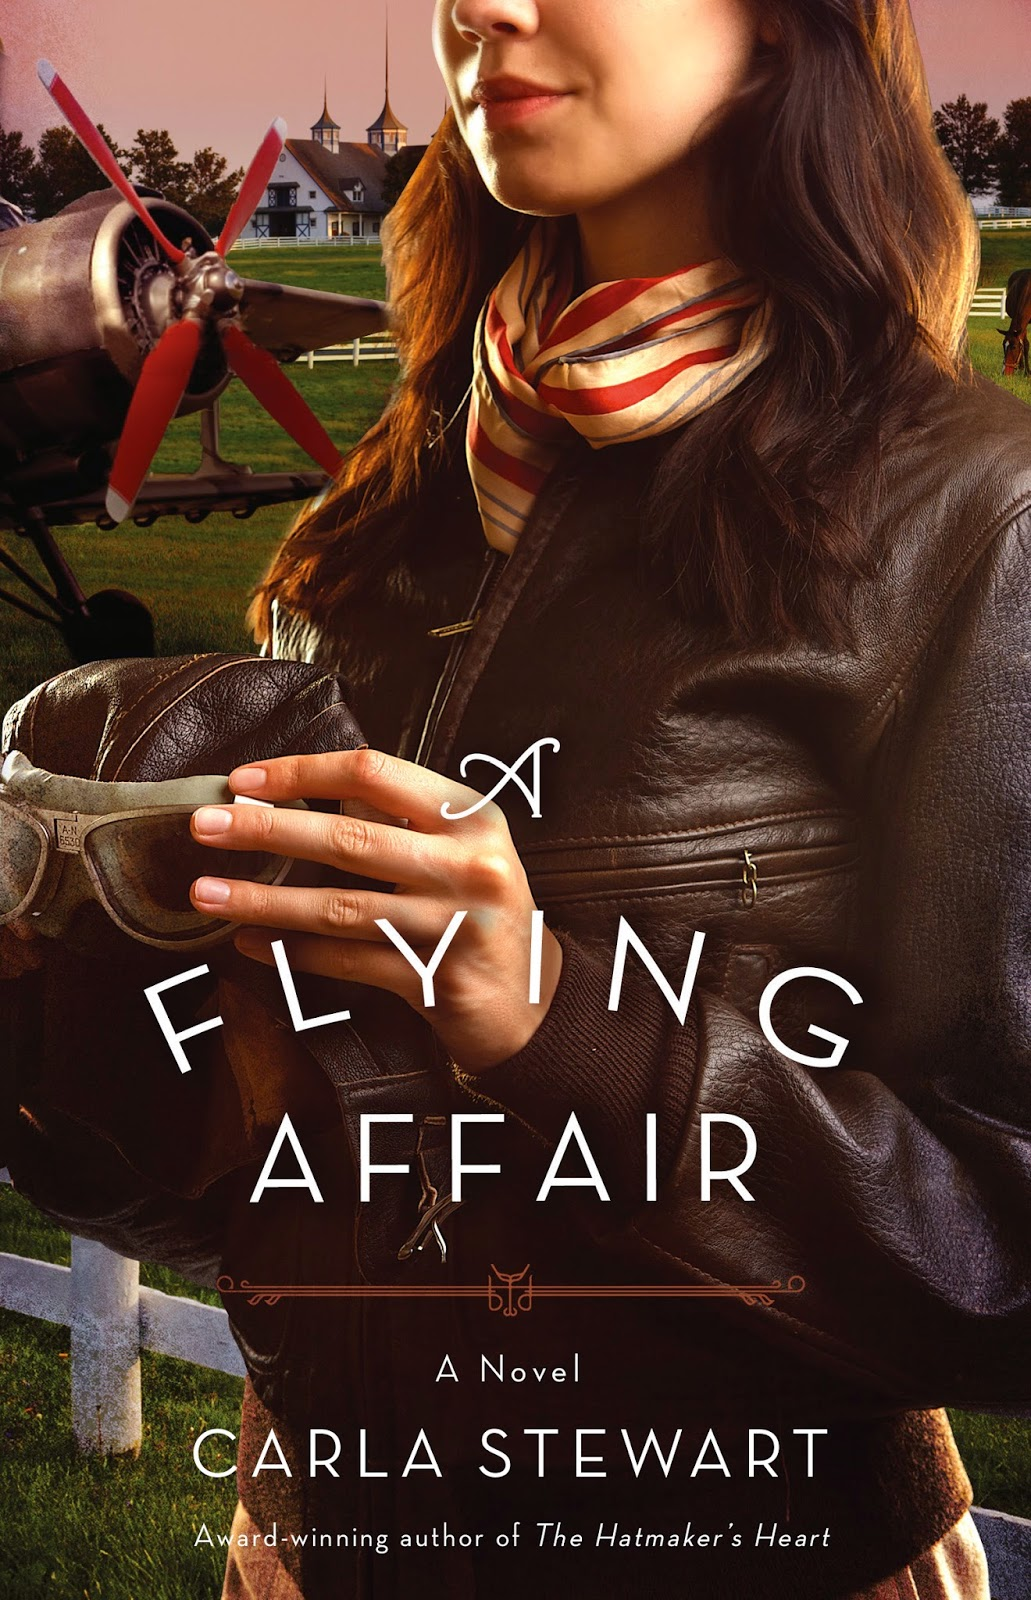 http://www.carlastewart.com/2015/02/18/flying-affair/